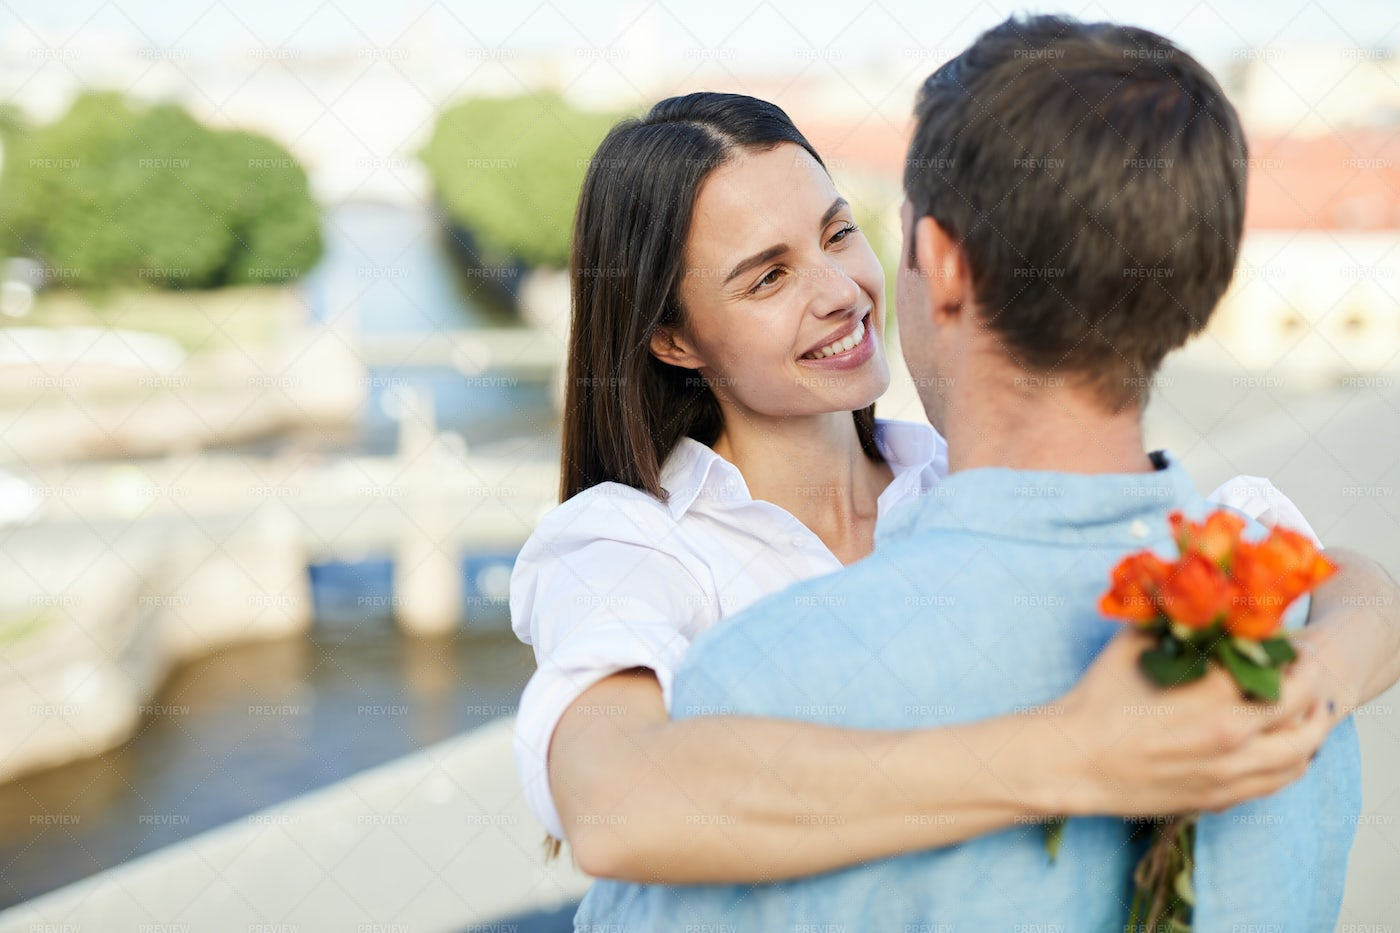 Affectionate Girl Looking At Boyfriend: Stock Photos